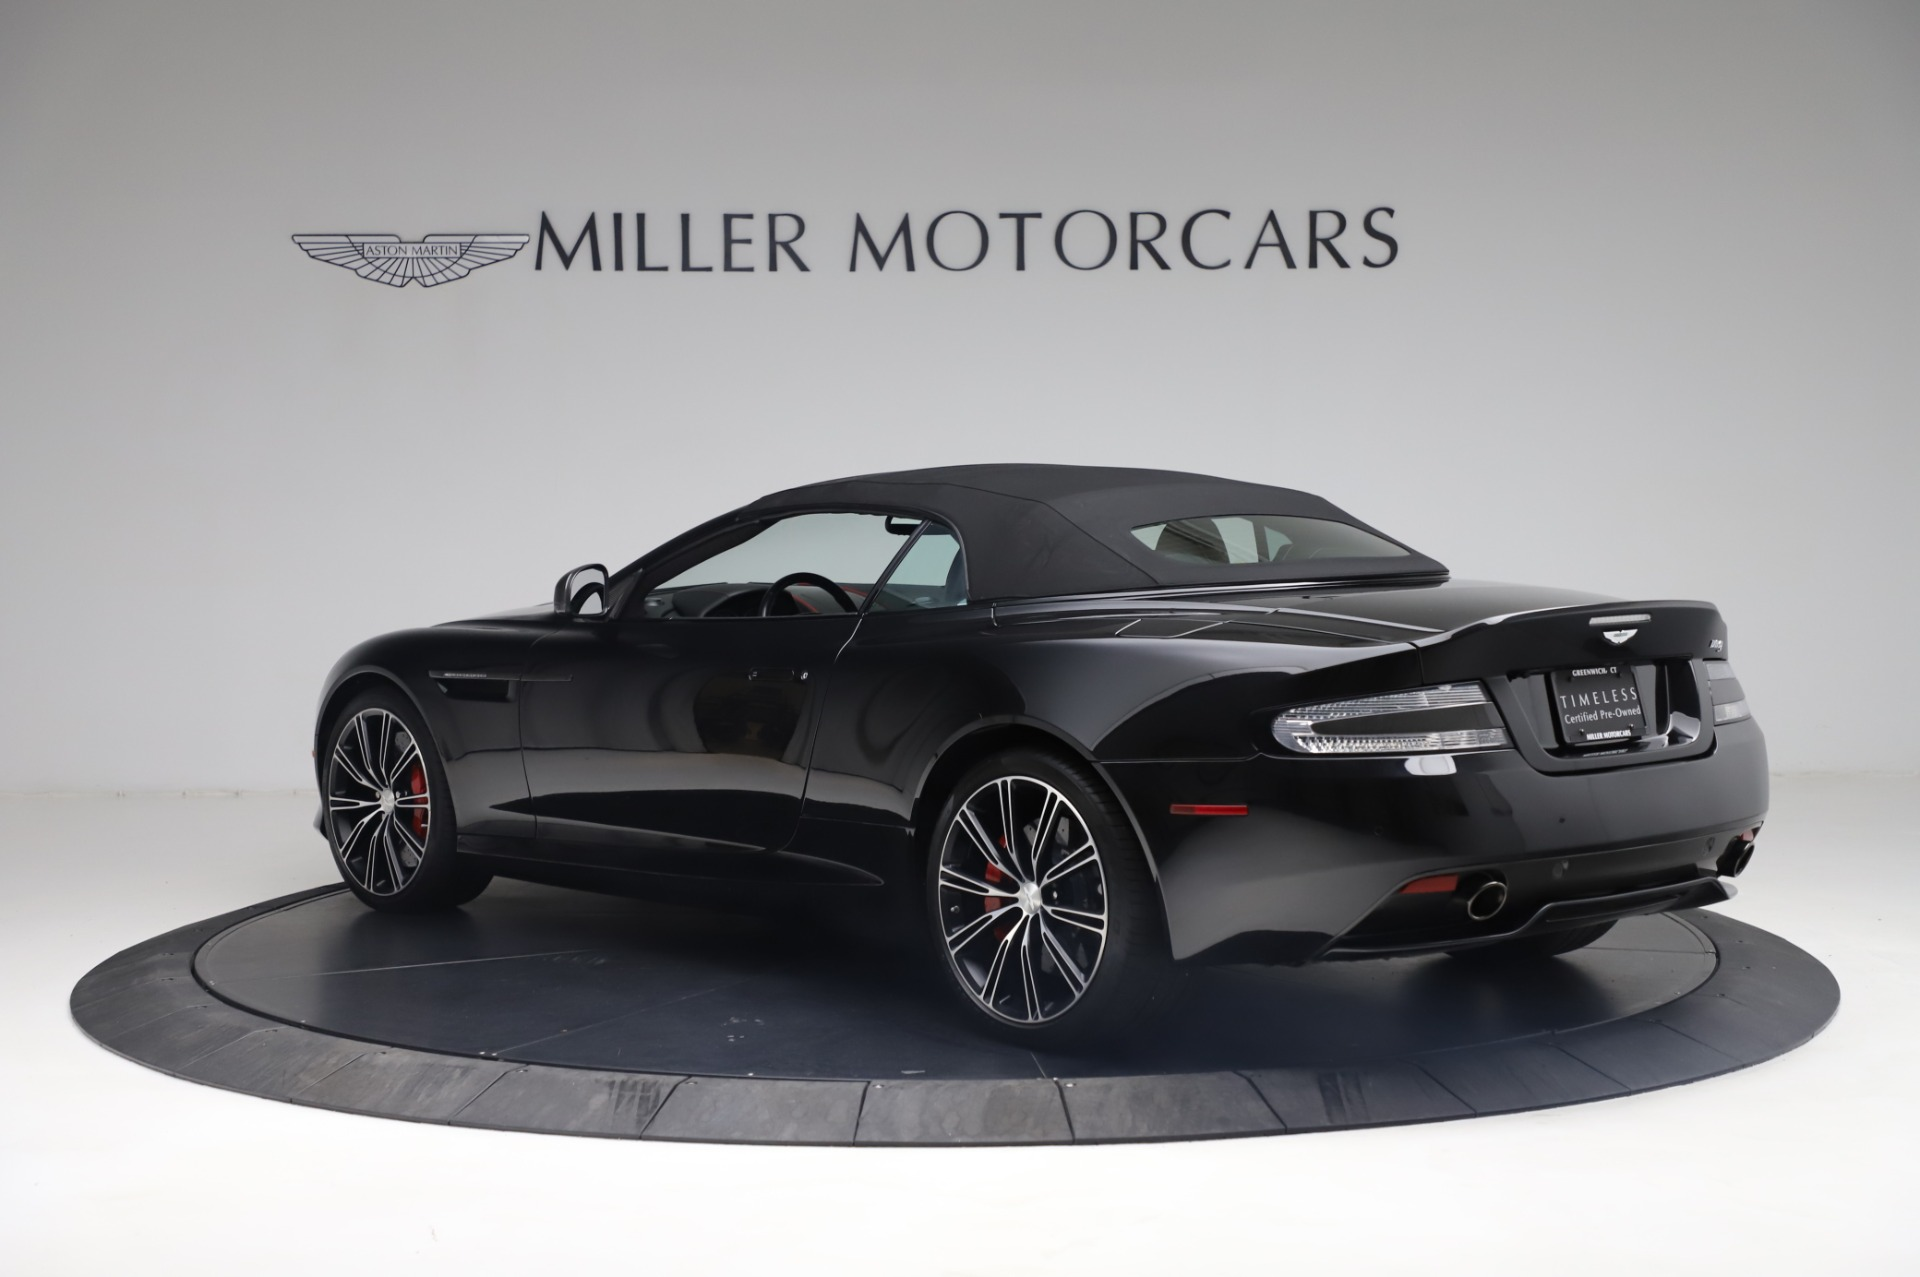 Used 2015 Aston Martin DB9 Convertible For Sale In Westport, CT 1919_p15